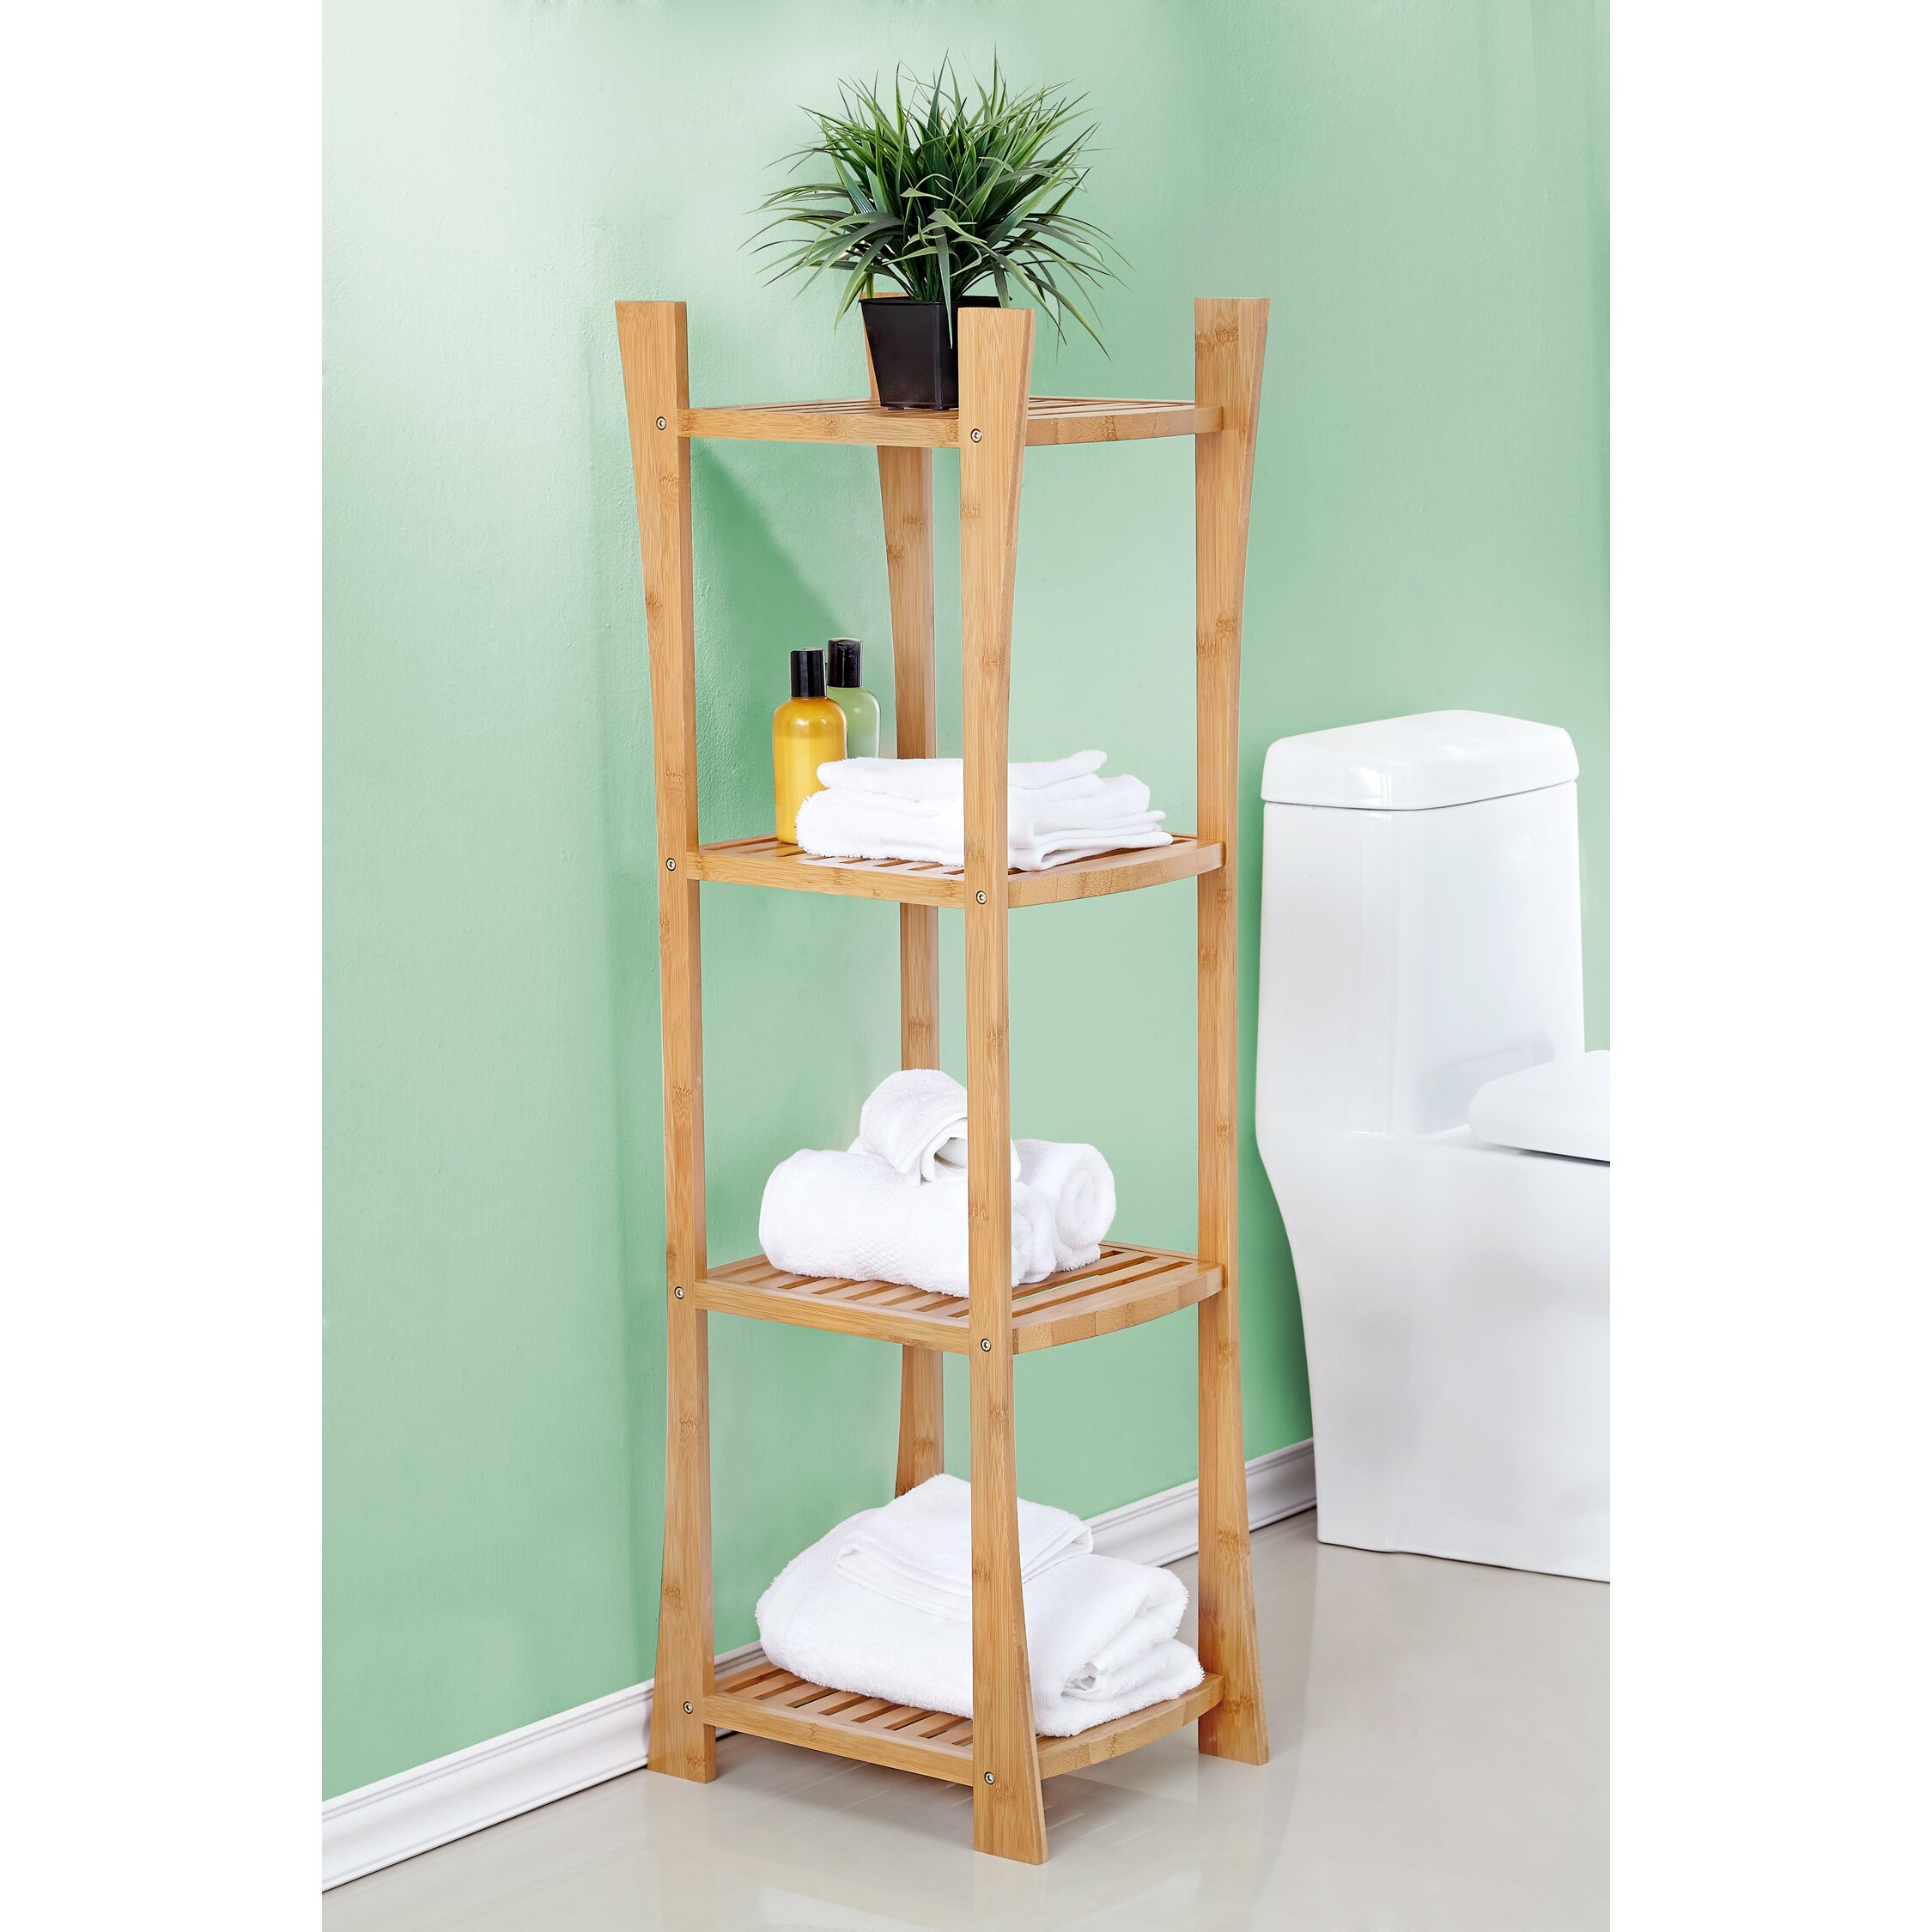 Bathroom Shelf Fox Hill Trading Bamboo 15 W X 45 H Bathroom Shelf Reviews